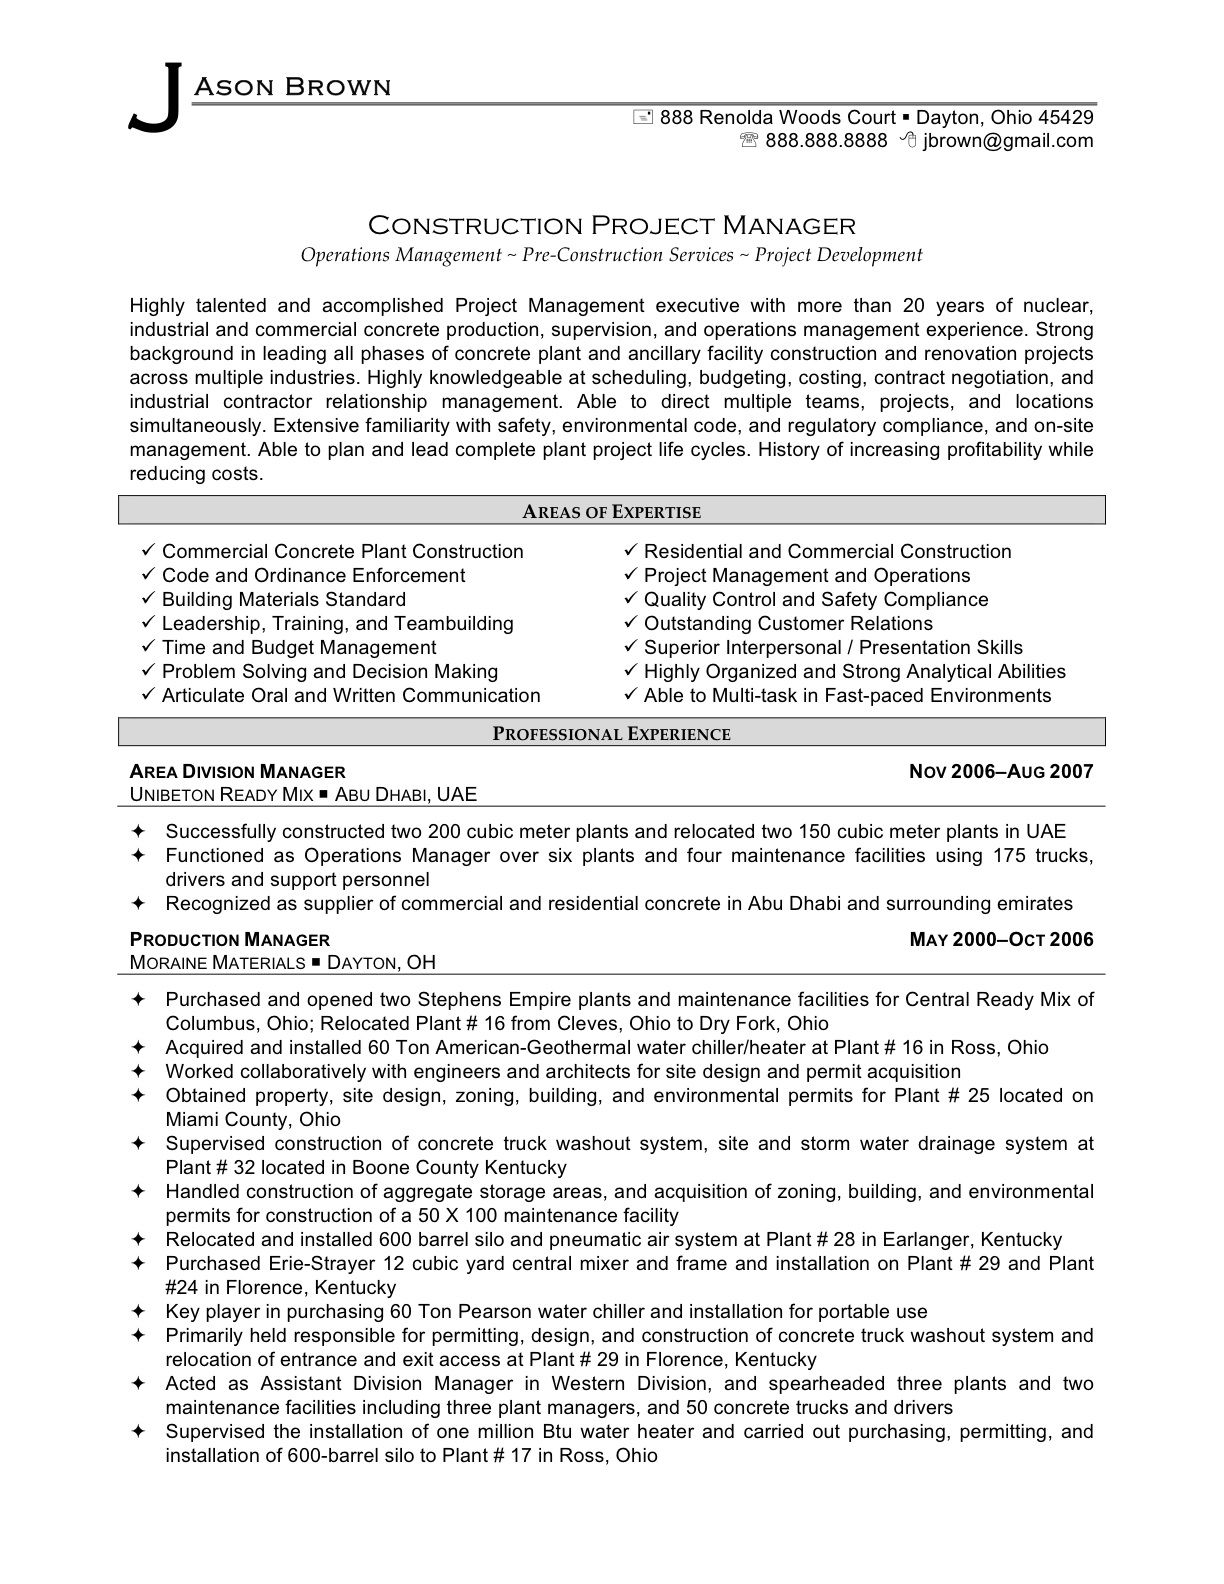 Resume Construction Project Coordinator Resume Sample resume templates project manager residential or commercial superintendent manager